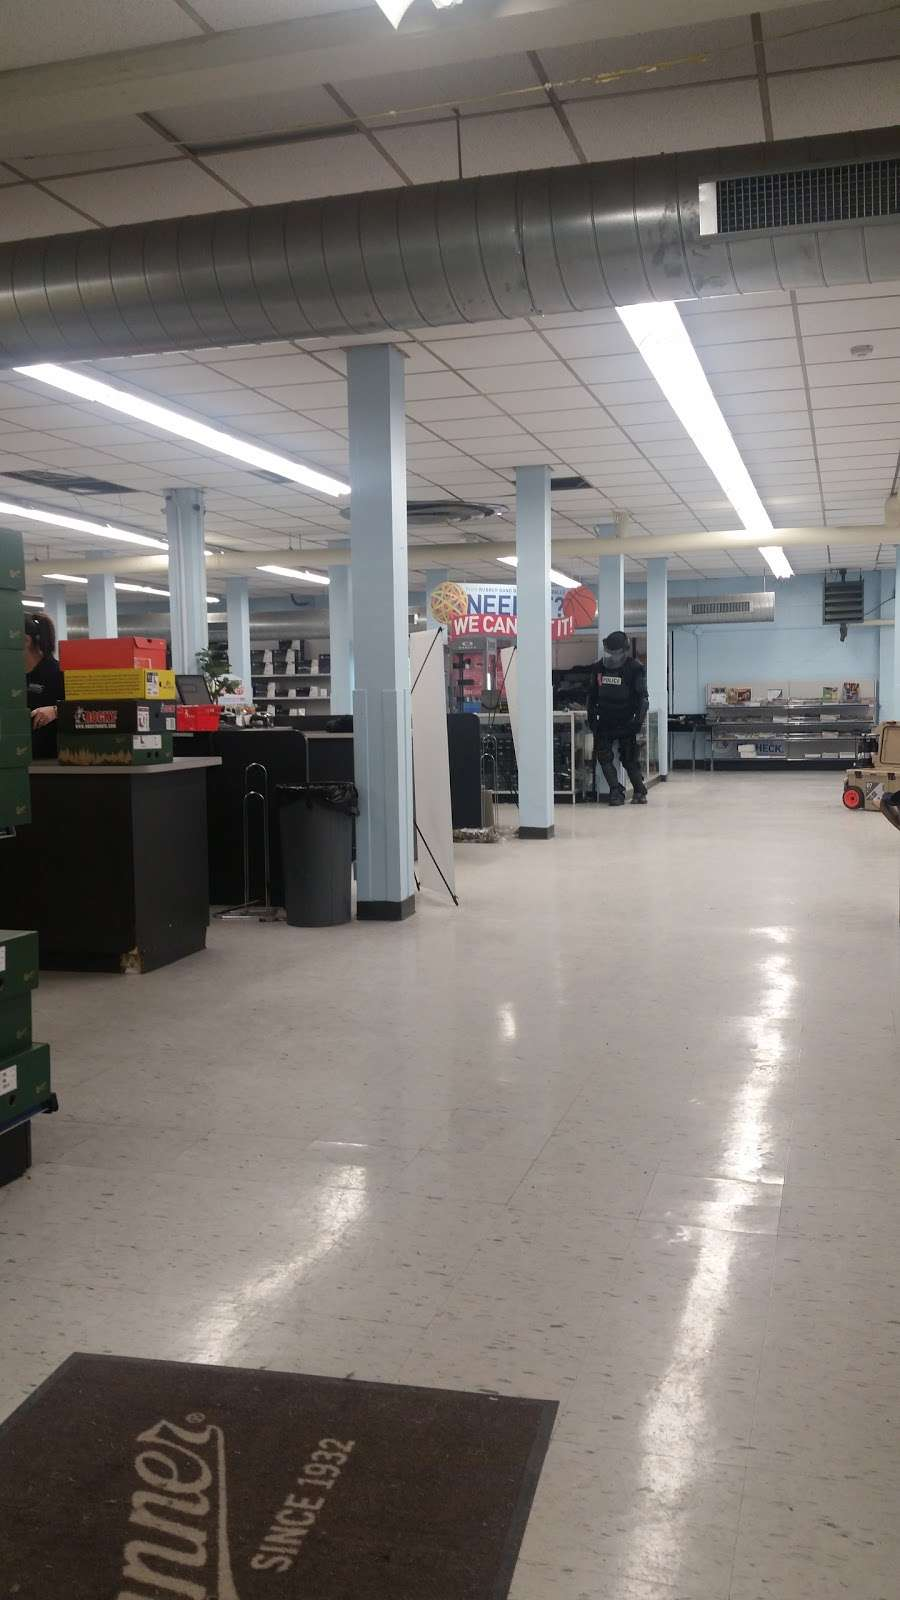 Gearin Up - clothing store  | Photo 8 of 10 | Address: McGuire AFB, NJ 08641, USA | Phone: (609) 723-4700